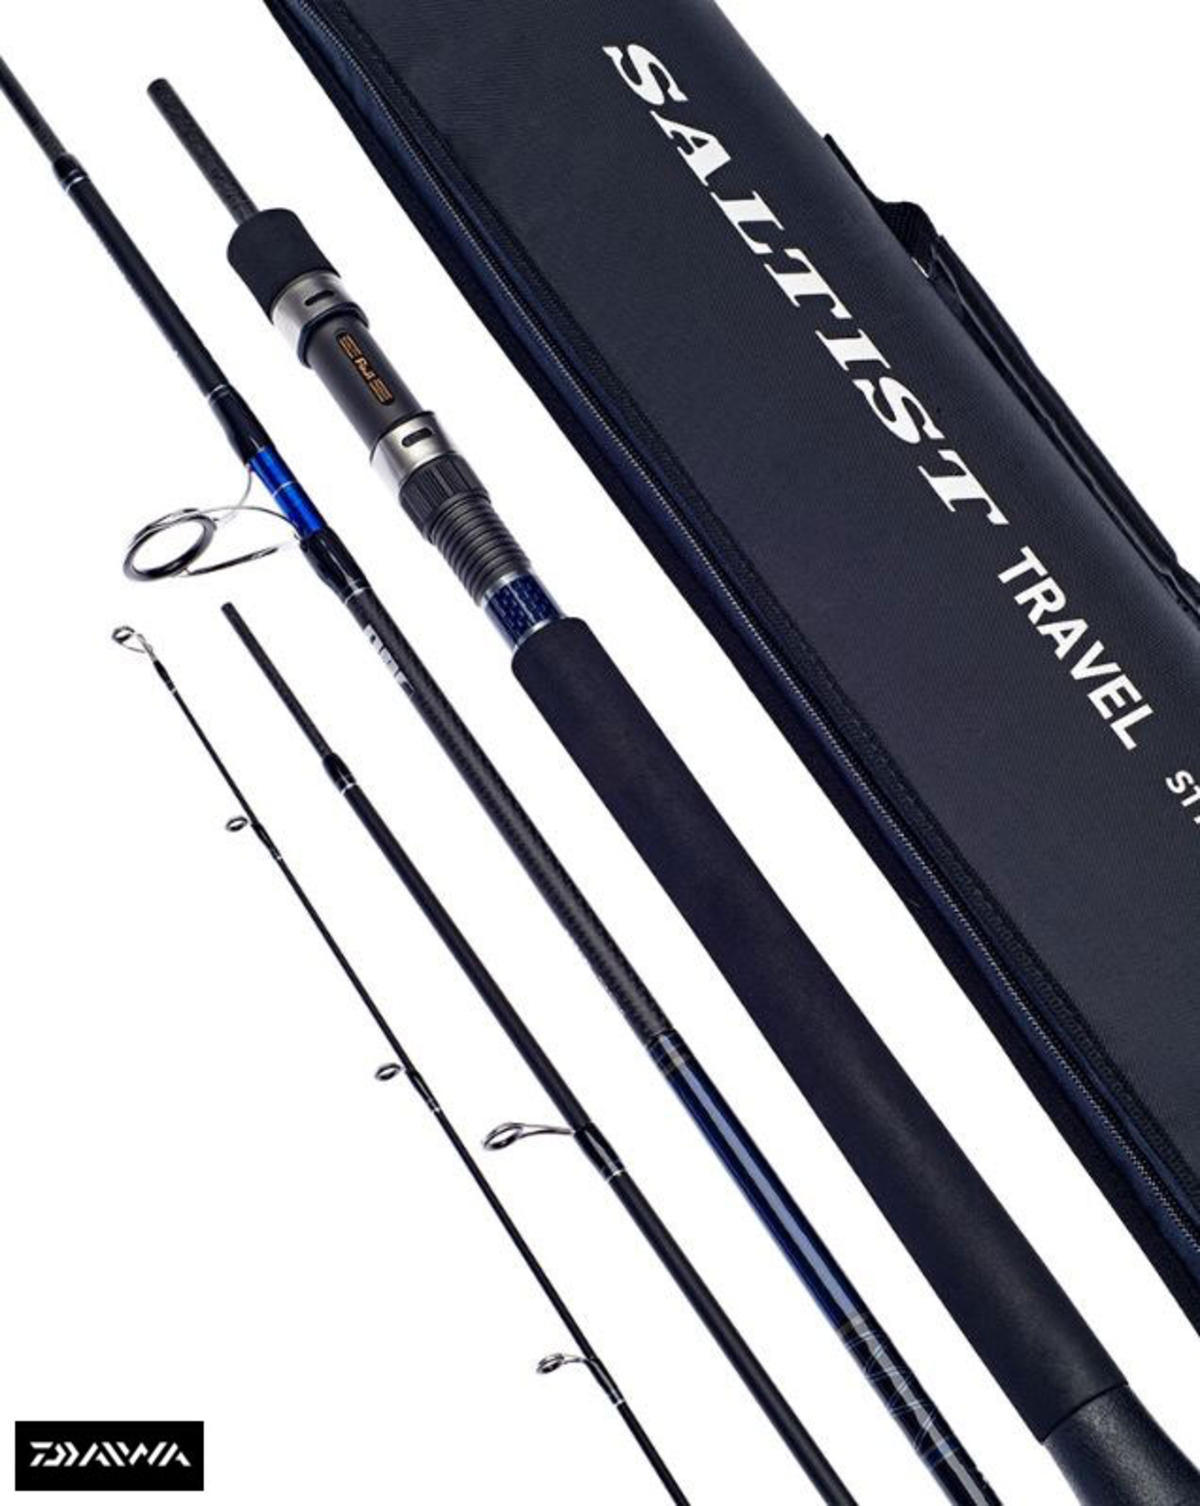 New Daiwa Saltist Travel Spin - Saltwater Fishng Rod - All Models